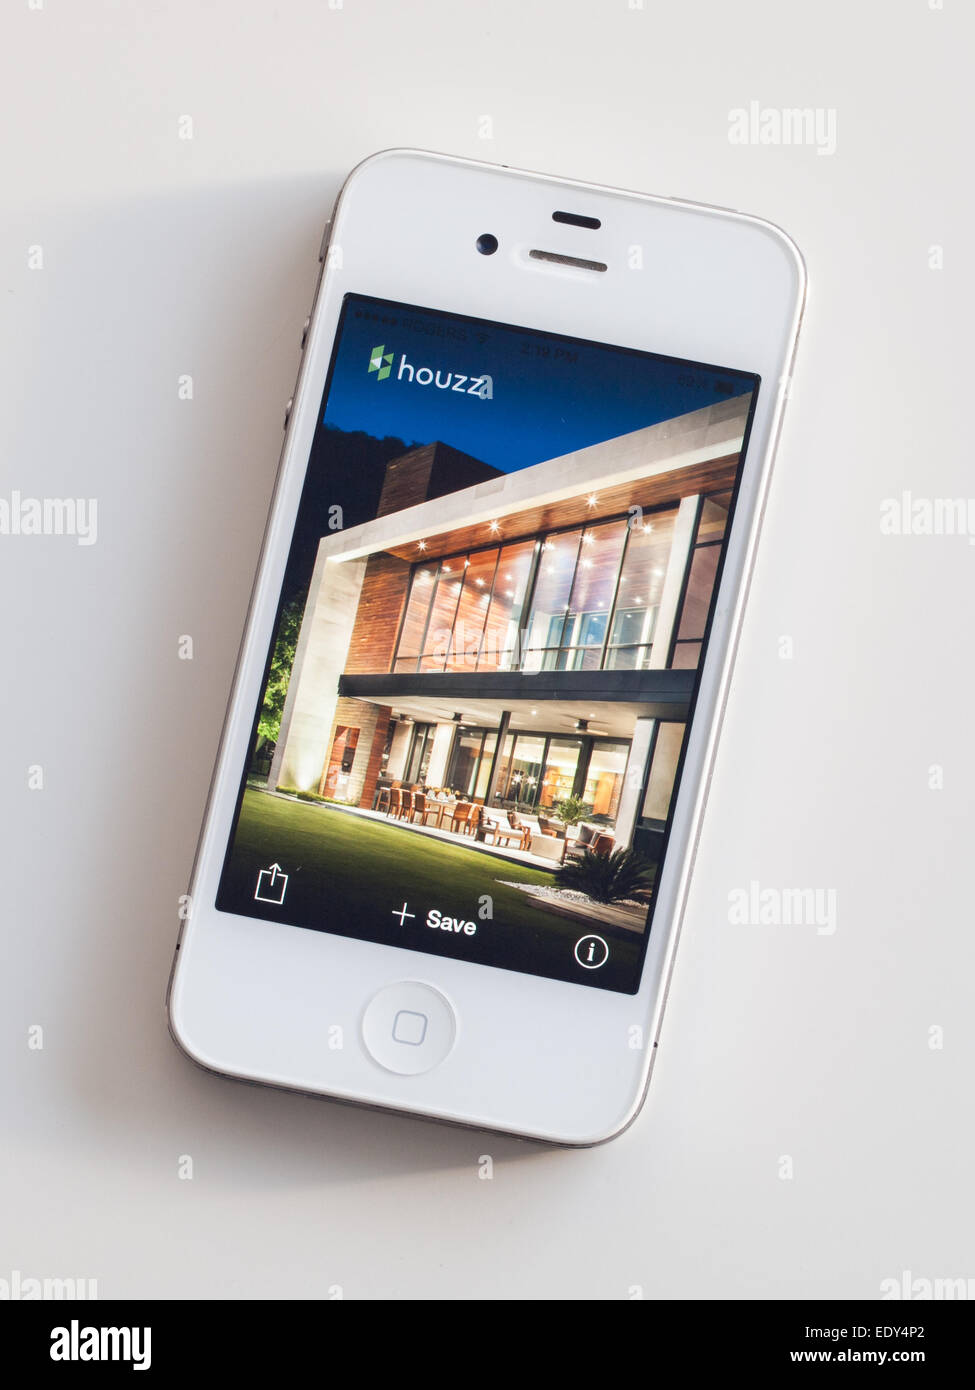 A screenshot from the Houzz mobile app on a white Apple iPhone 4. - Stock Image